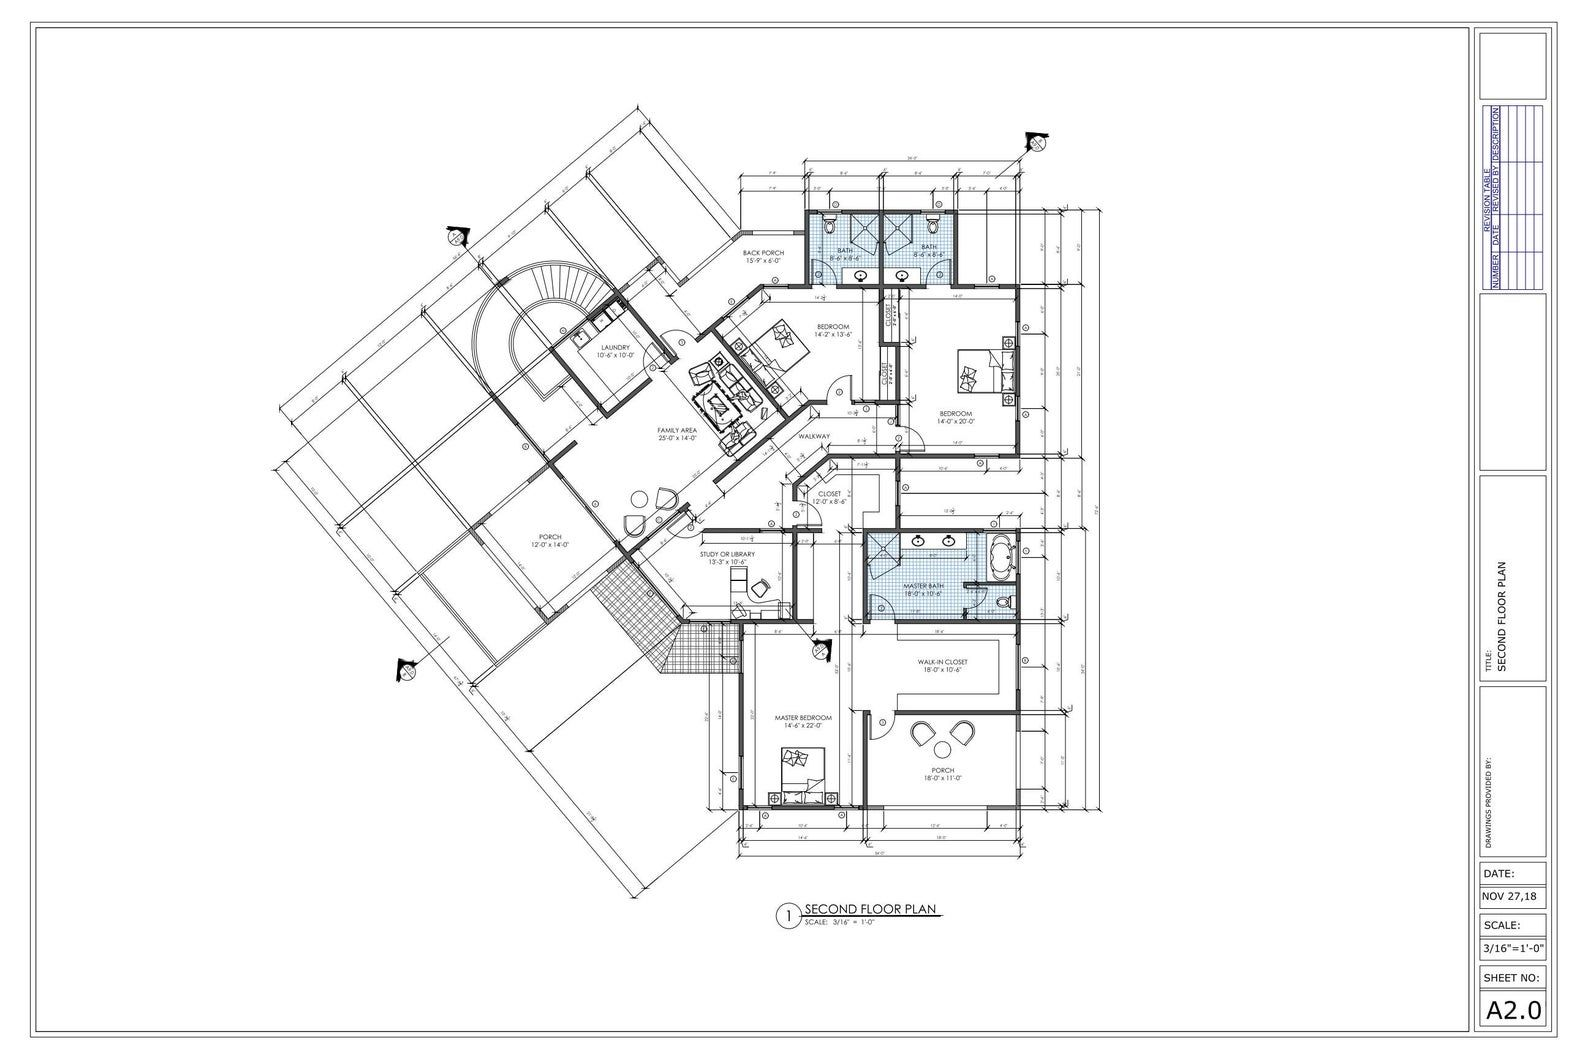 4 Bedroom House Plan 4 Bedroom Floor Plan Instant Download Modern House Plans Sketch House Plans Modern Architectural Home Buy Now 4 Bedroom House Plans Bedroom House Plans Bedroom Floor Plans